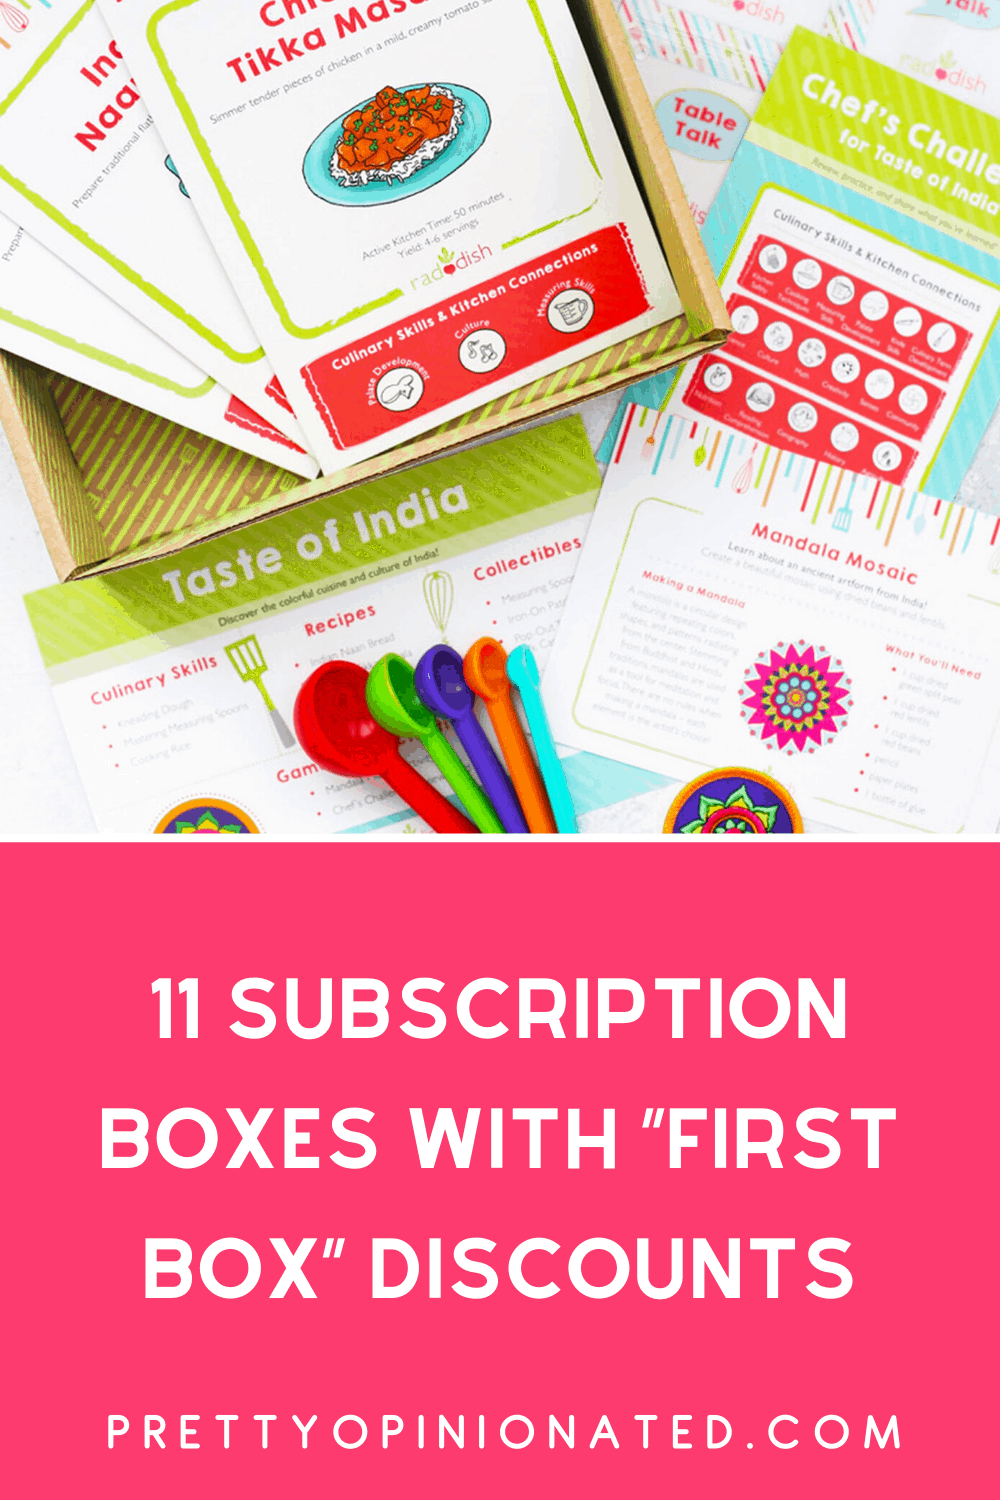 Check out 11 subscription boxes that offer deep discounts on your first box so you can actually make sure you like it before committing to full price.